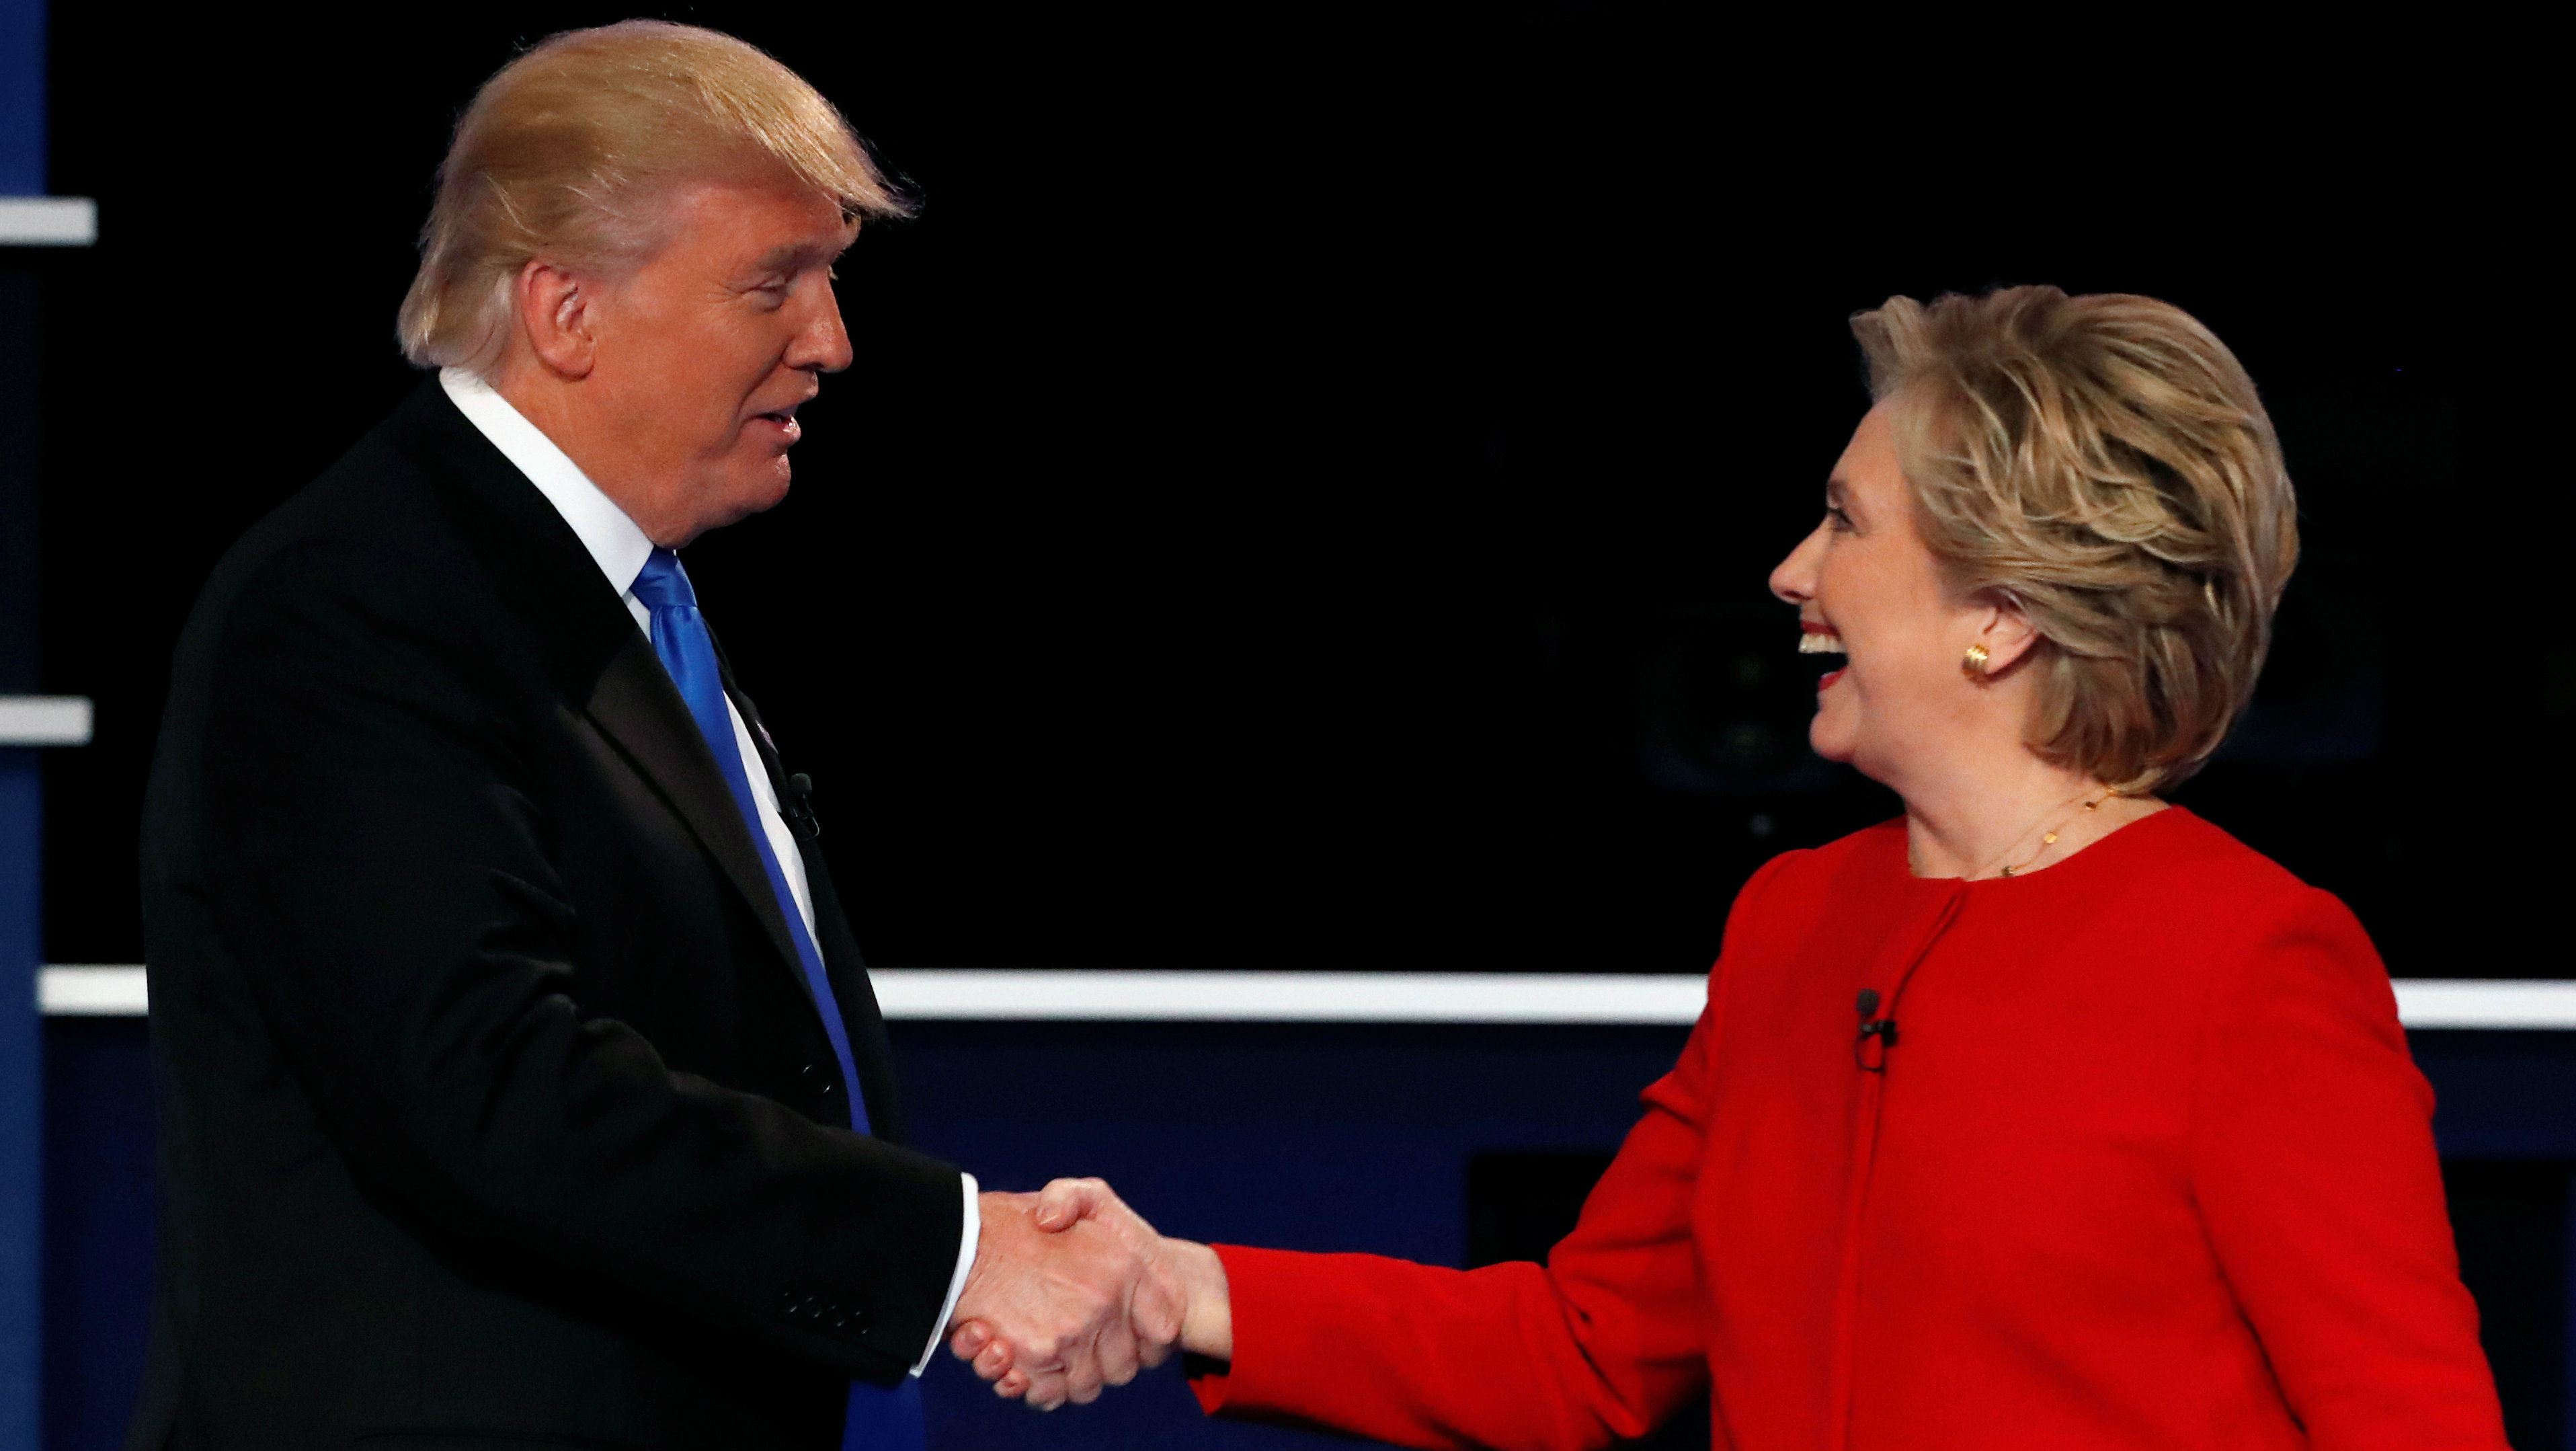 Republican U.S. presidential nominee Donald Trump and Democratic U.S. presidential nominee Hillary Clinton shake hands at the end of their first presidential debate at Hofstra University in Hempstead, New York, U.S., September 26, 2016.